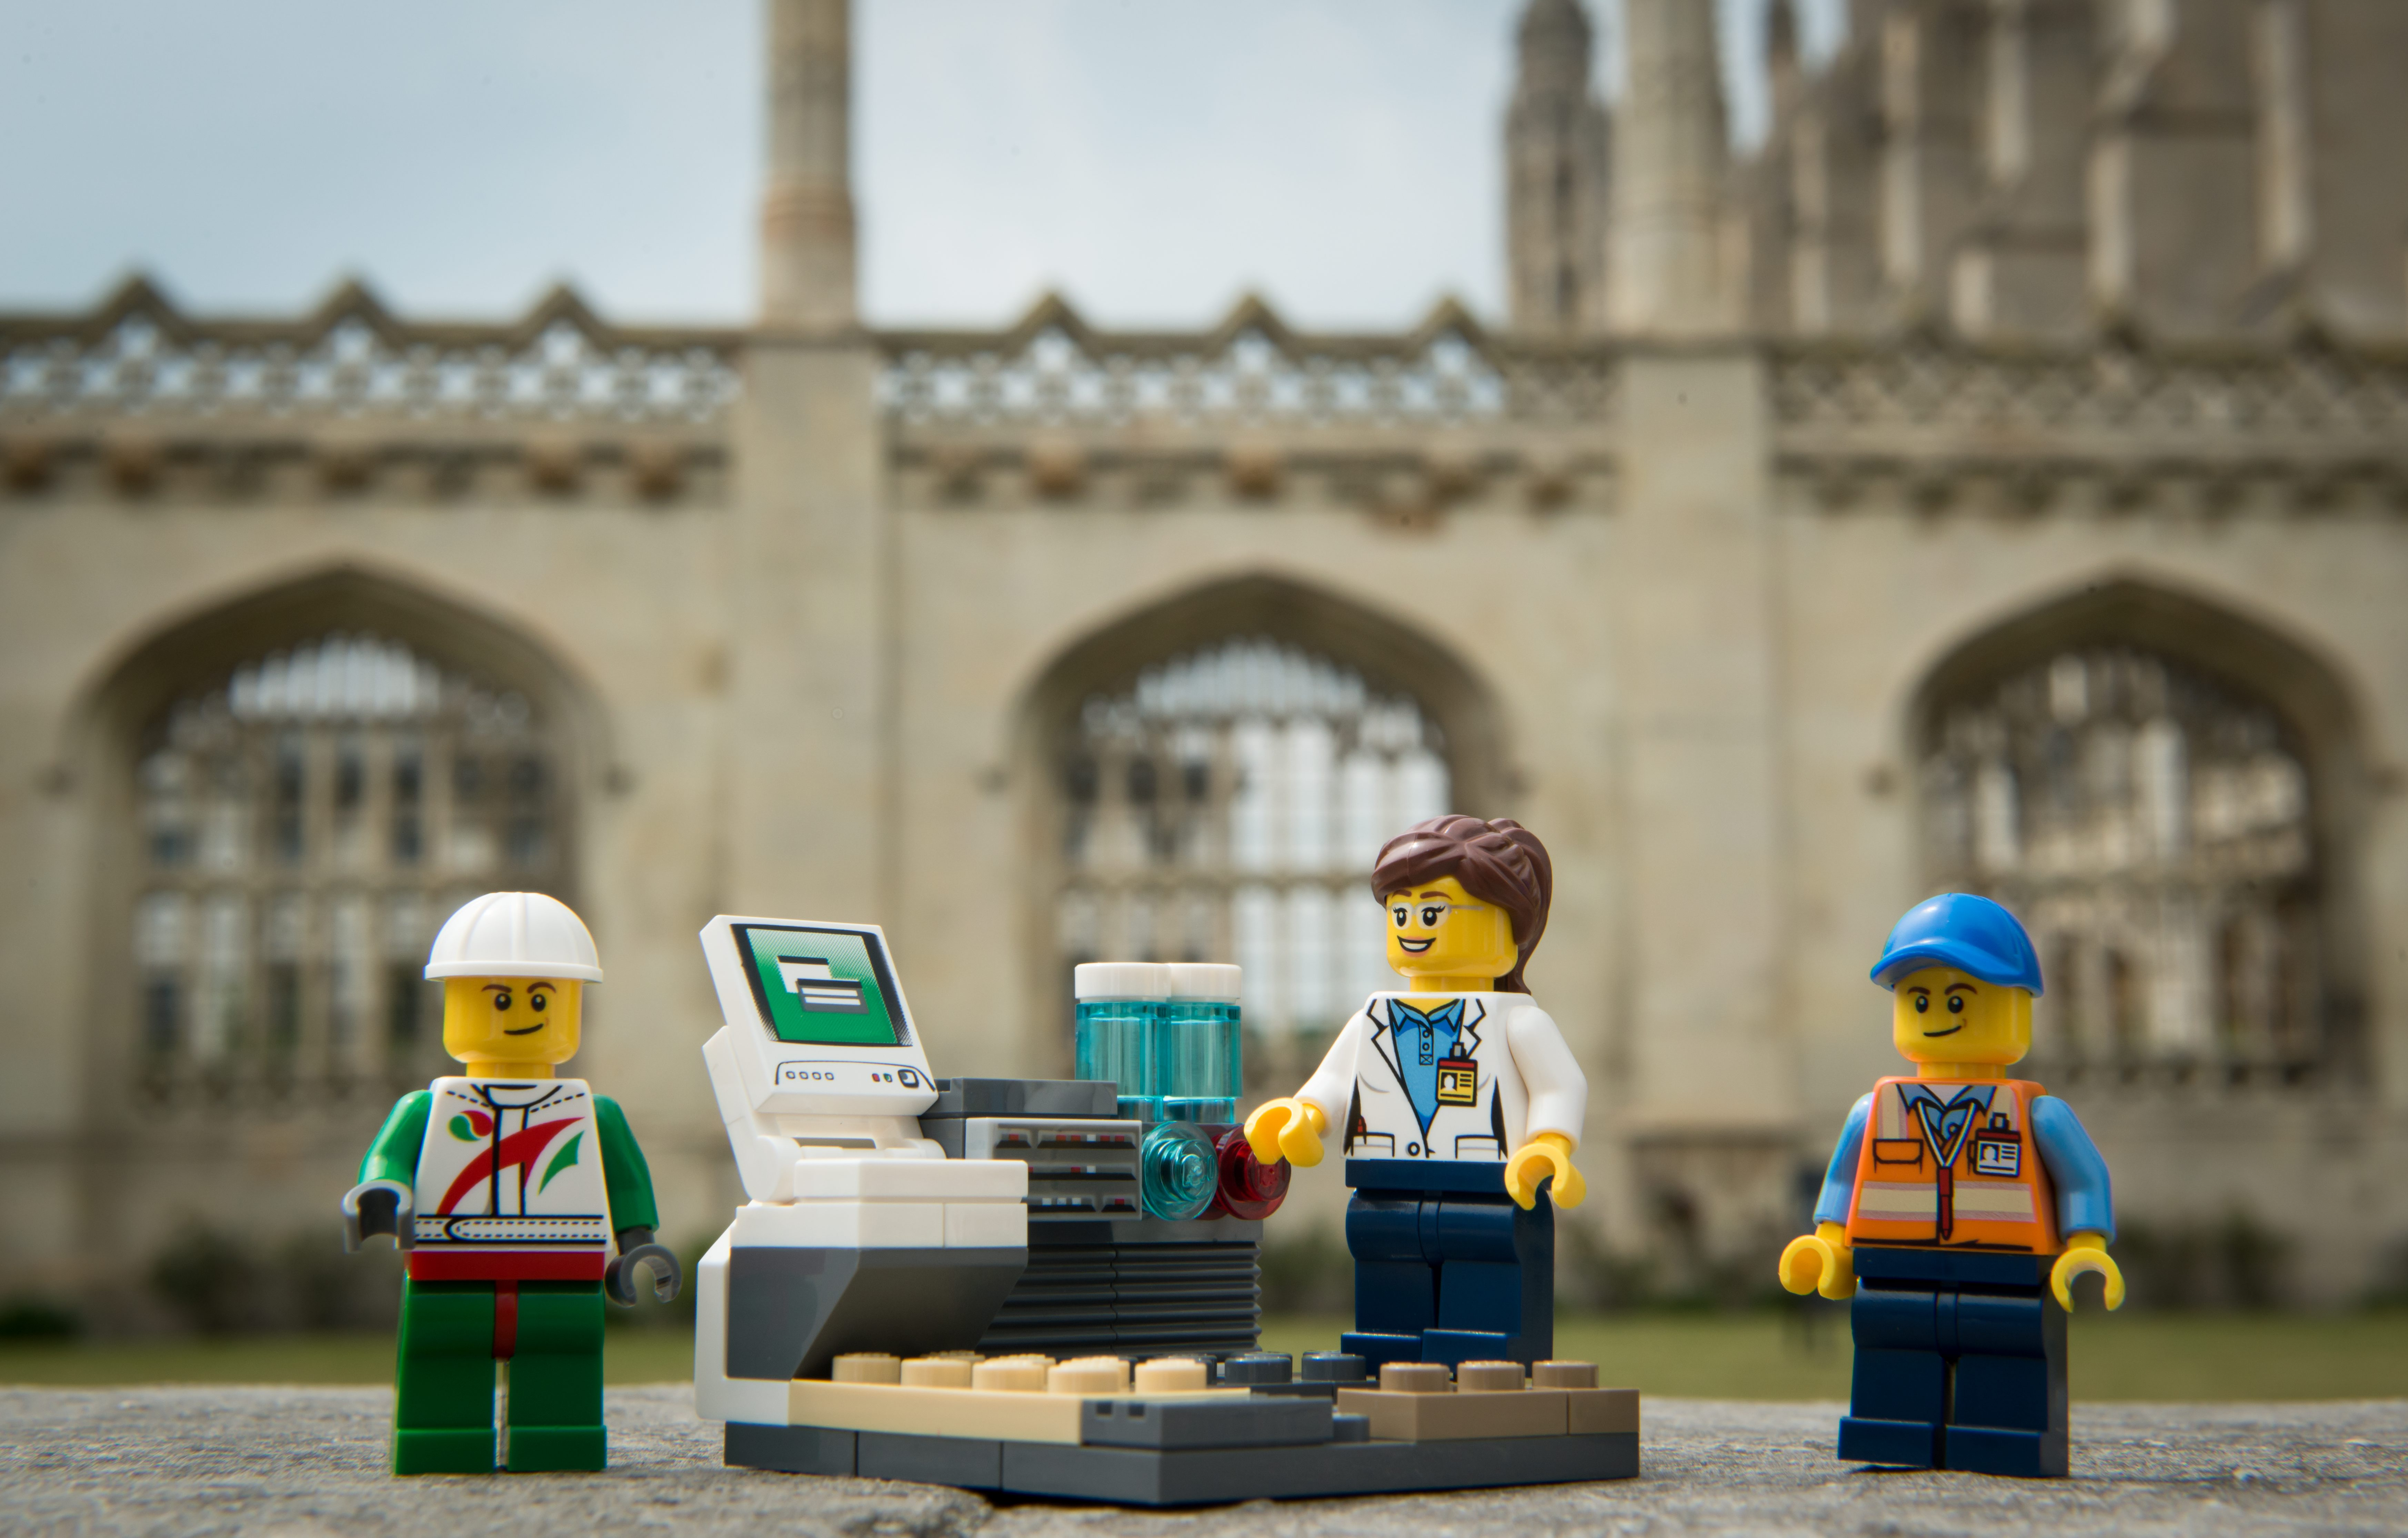 """Cambridge University has created a new job professor of Lego  See MASONS story MNLEGO: One of the world's best universities is planning to hire a professor - of LEGO. The lucky candidate will be the head of their own research department at prestigious Cambridge. Officials say the role is expected to be created within the Faculty of Education after the university received £4 million of donations from the LEGO Foundation. Cambridge's general board has recommended for the LEGO professorship """"of play in education, development and learning"""" to start in October 2015."""